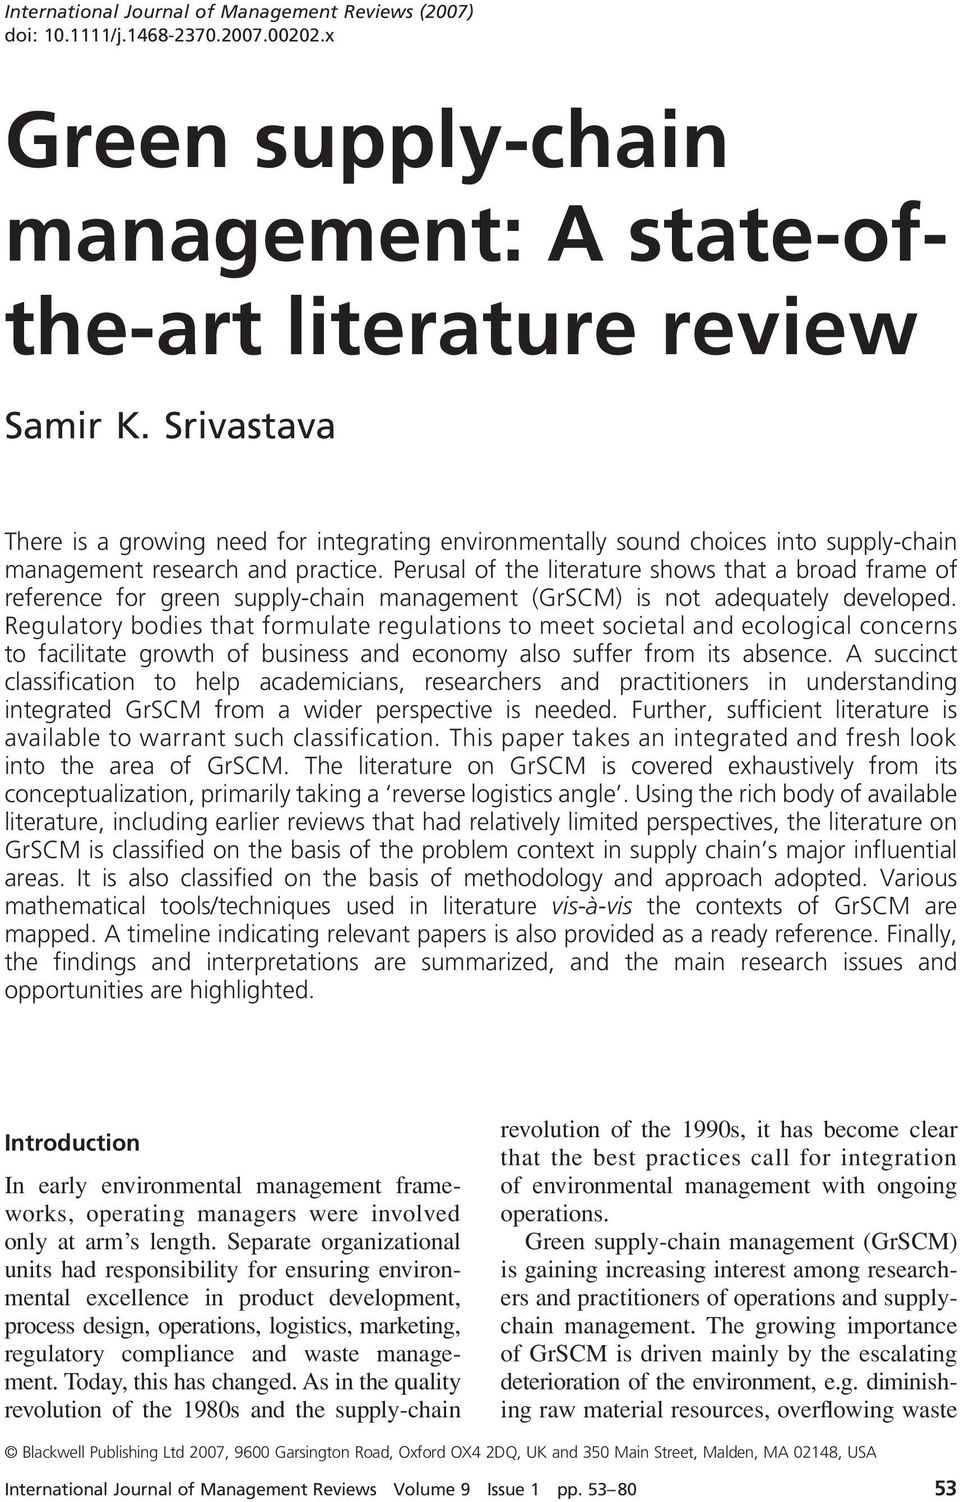 review management: A state-ofthe-art literature review Samir K. Srivastava International Journal of Management Reviews Vol. 9 Issue 1 pp.